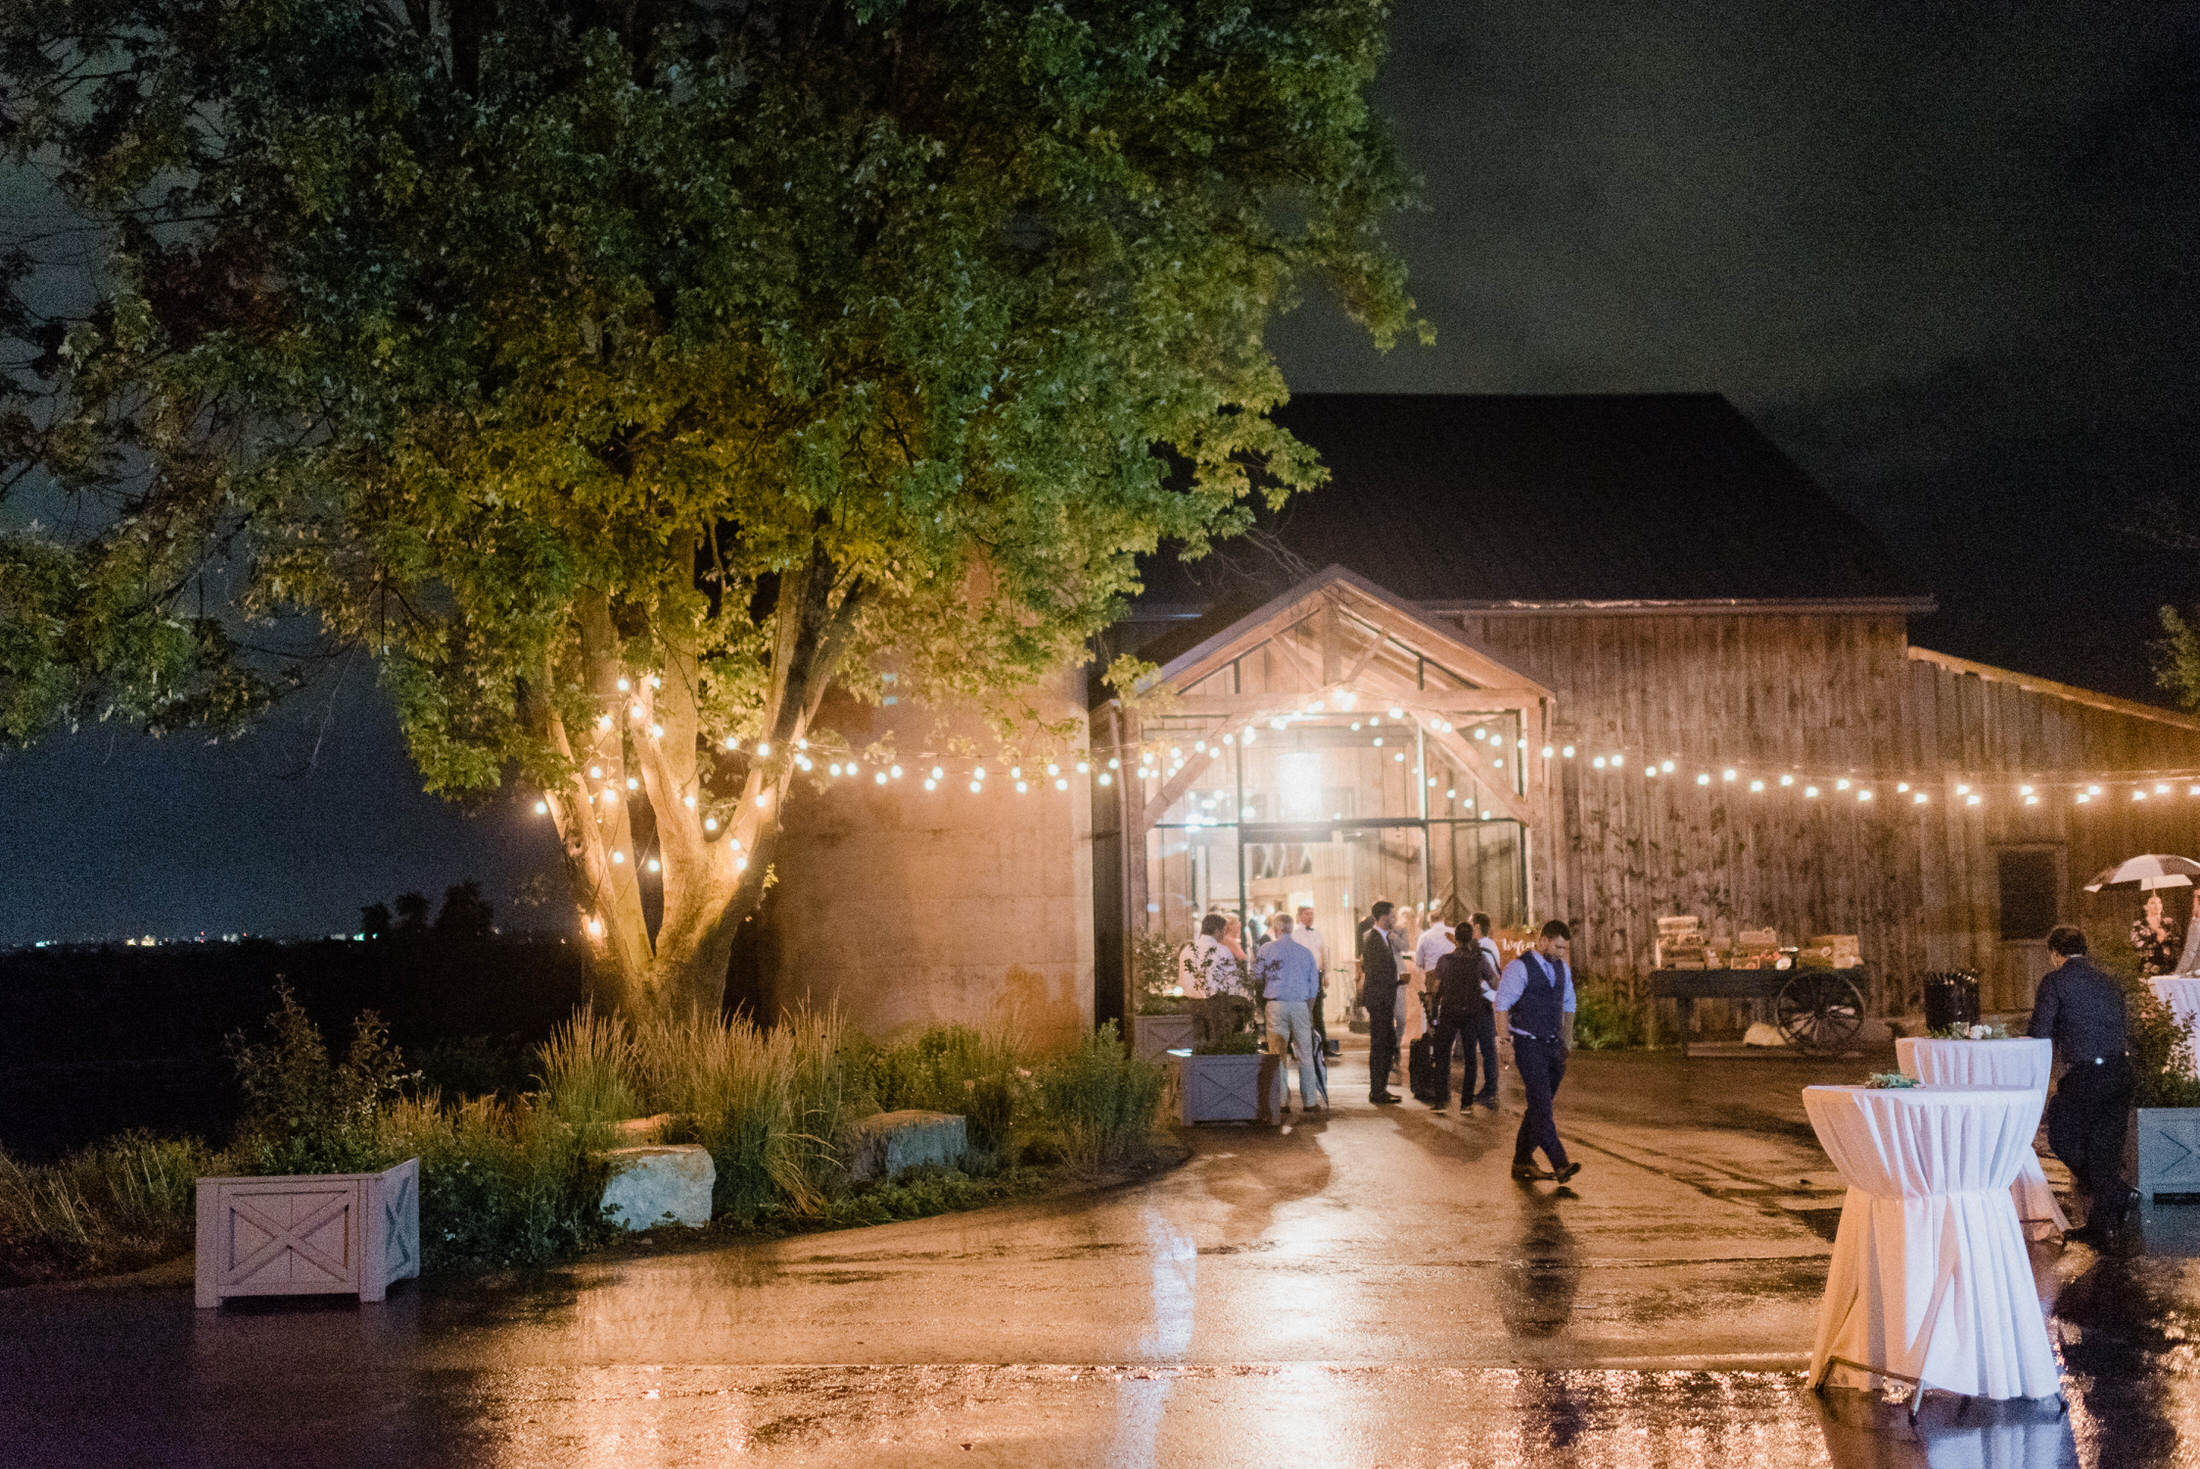 Wedding photography by the talented   Jenn Kavanagh Photography     at   Earth to Table: The Farm     in Hamilton.